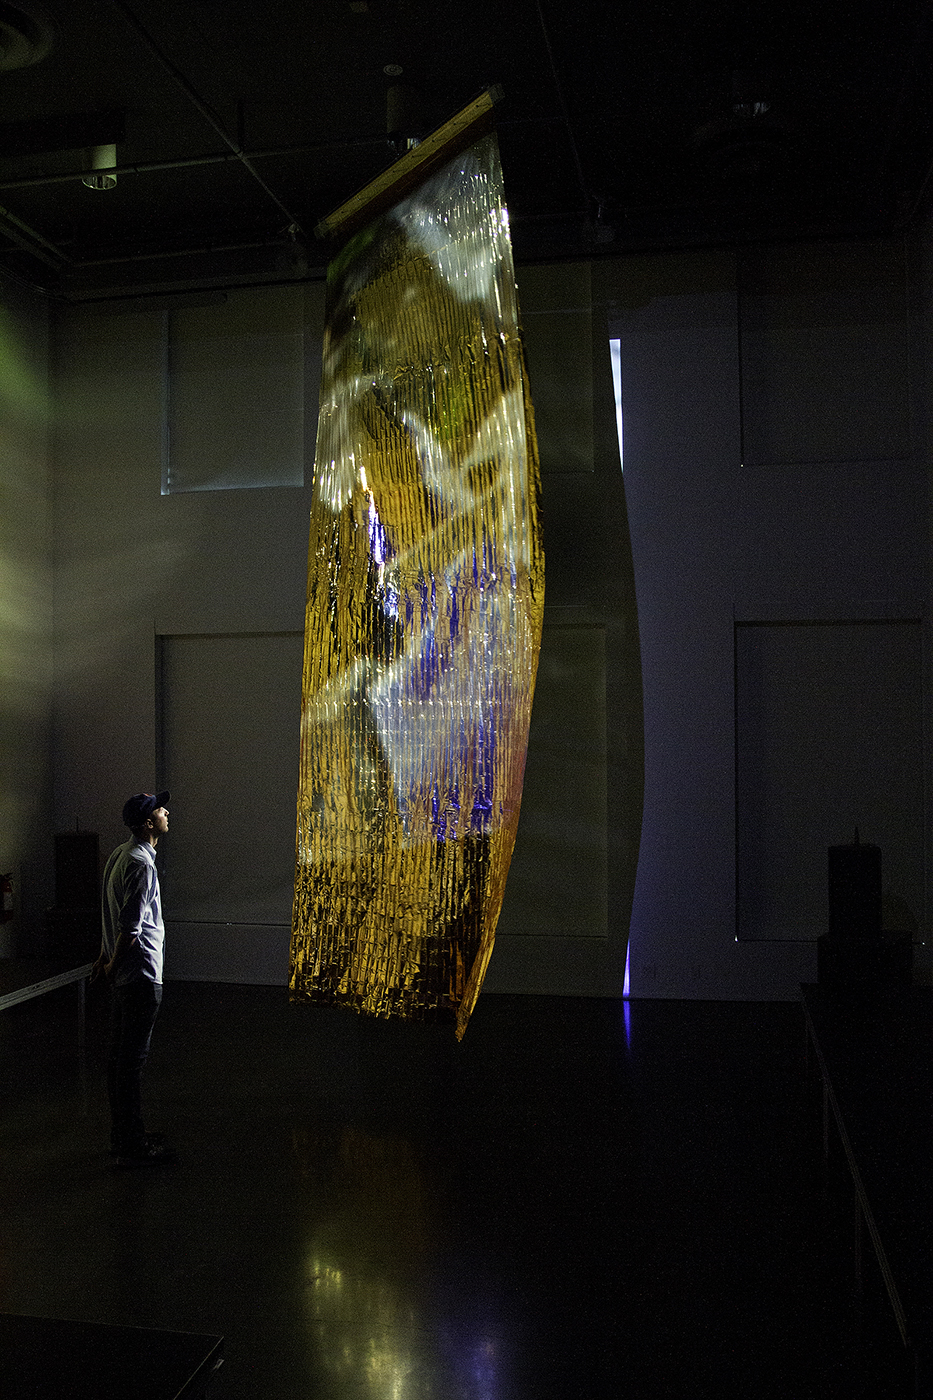 """Milieux associés, May 2014, Ælab, permutational and performative installation, with evening architectural projection. Phi Centre. """"2nd International Digital Arts Biennale."""" Photo © Lorna Bauer. Used with permission."""